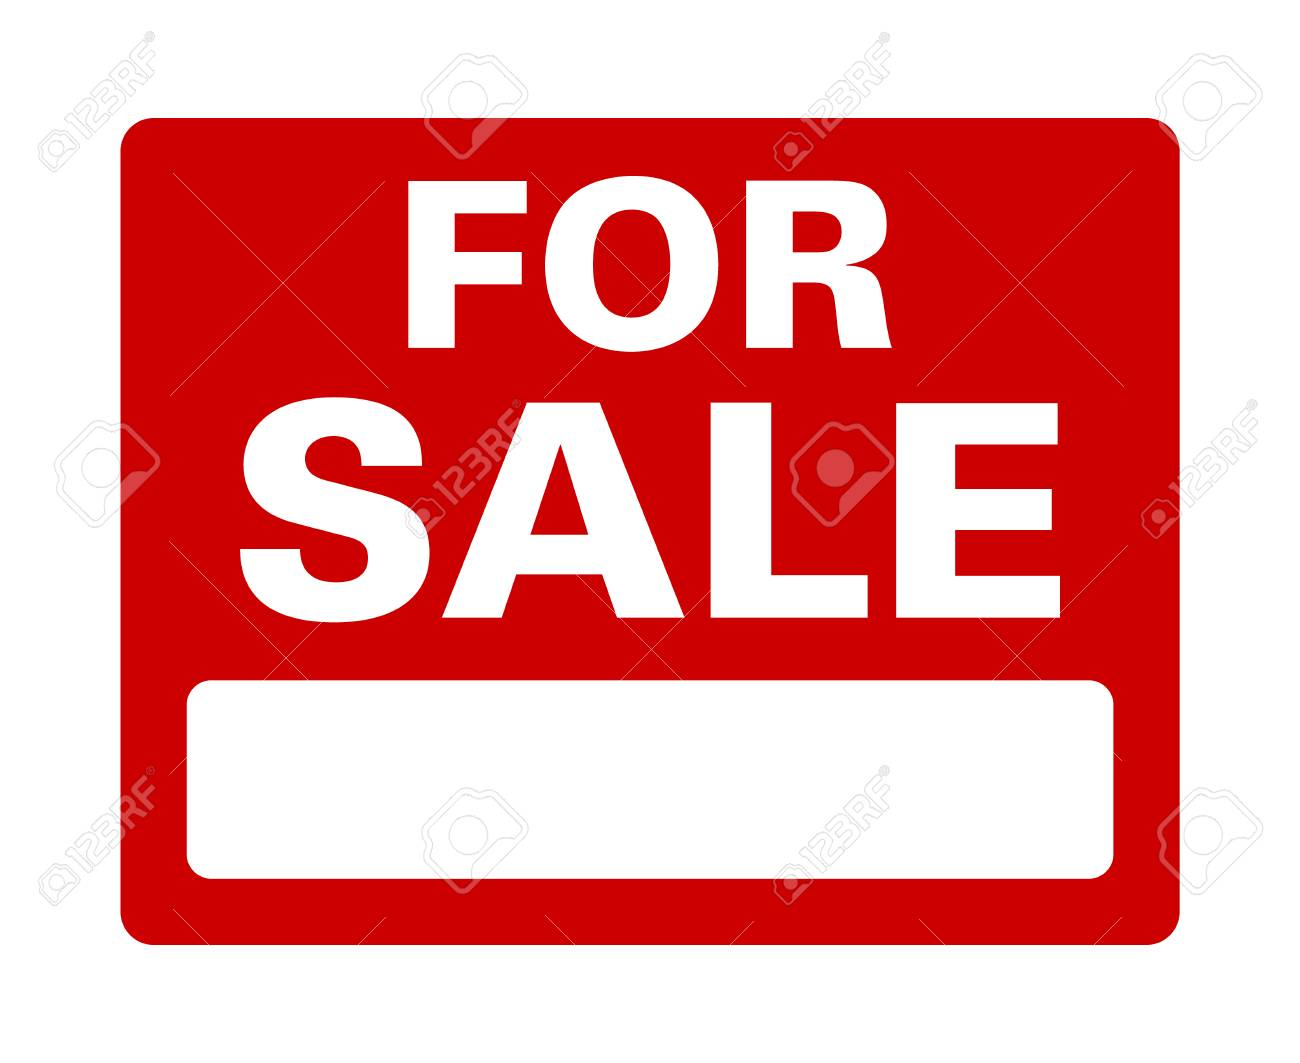 image regarding For Sale Sign Printable called Crimson for sale indicator with black area flat vector signal for print